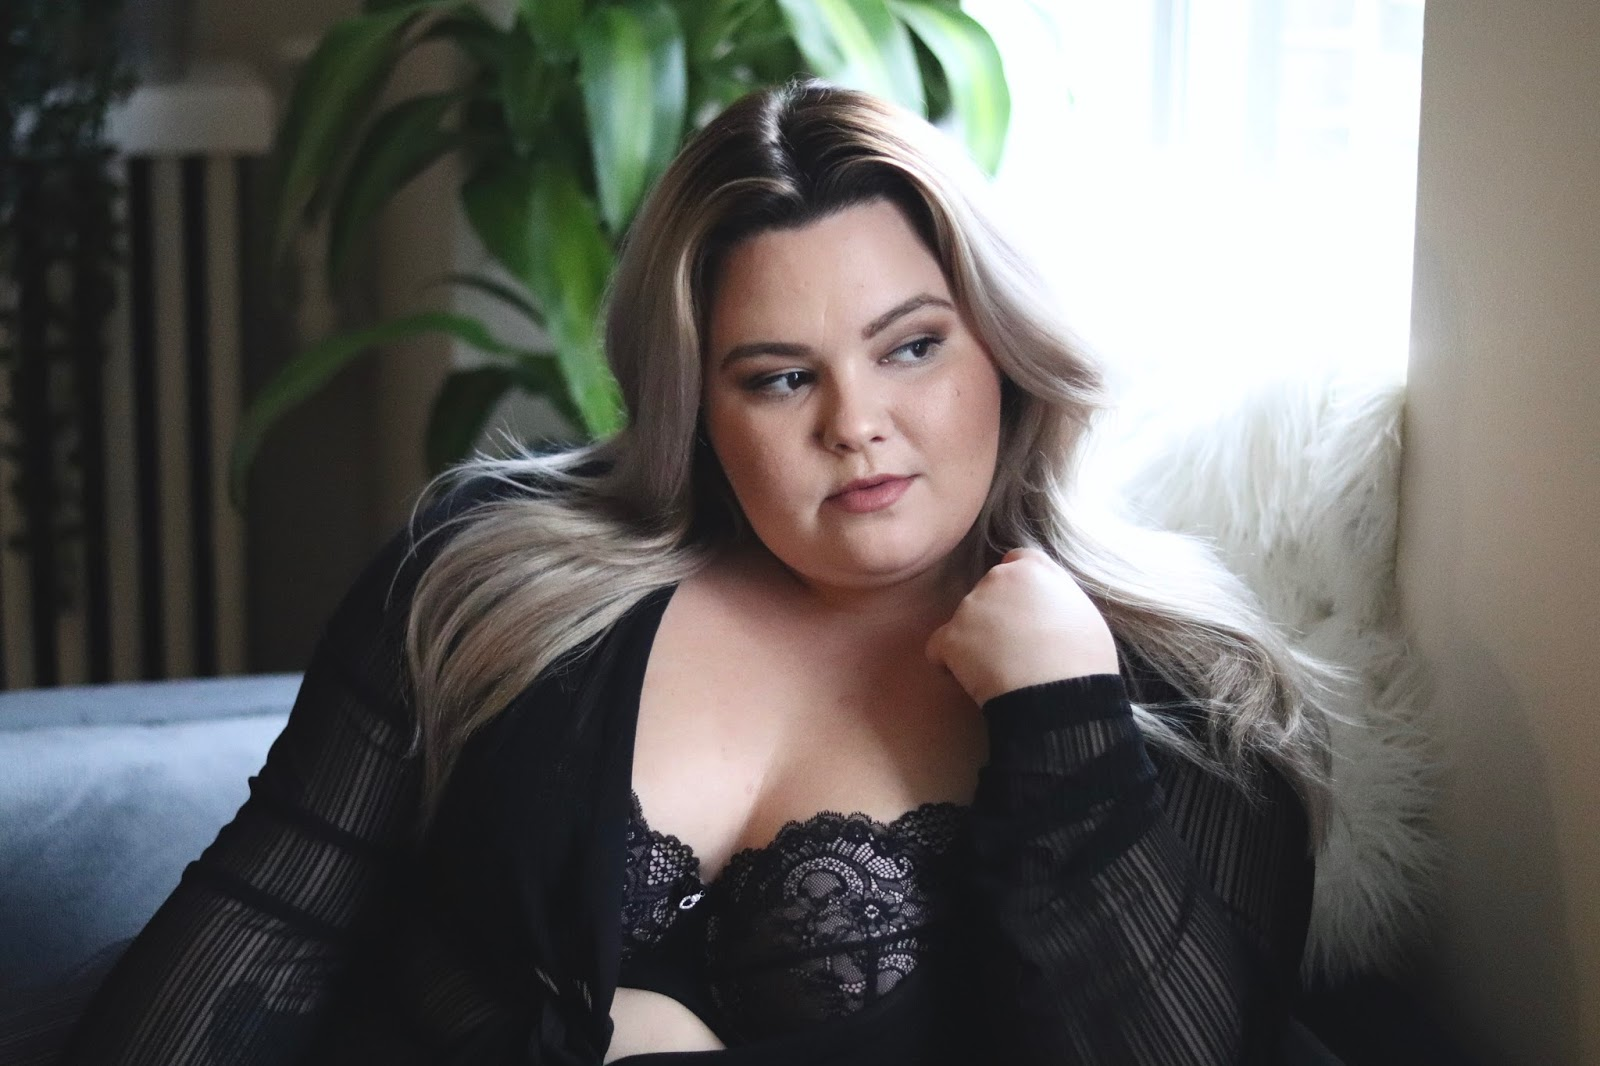 curvy couture, plus size bras, extended sizes, large bras, torrid bras, comfortable plus size bras, curvy couture intimates, plus size lingerie, Chicago fashion, curves and confidence, fashion to figure, plus size fashion